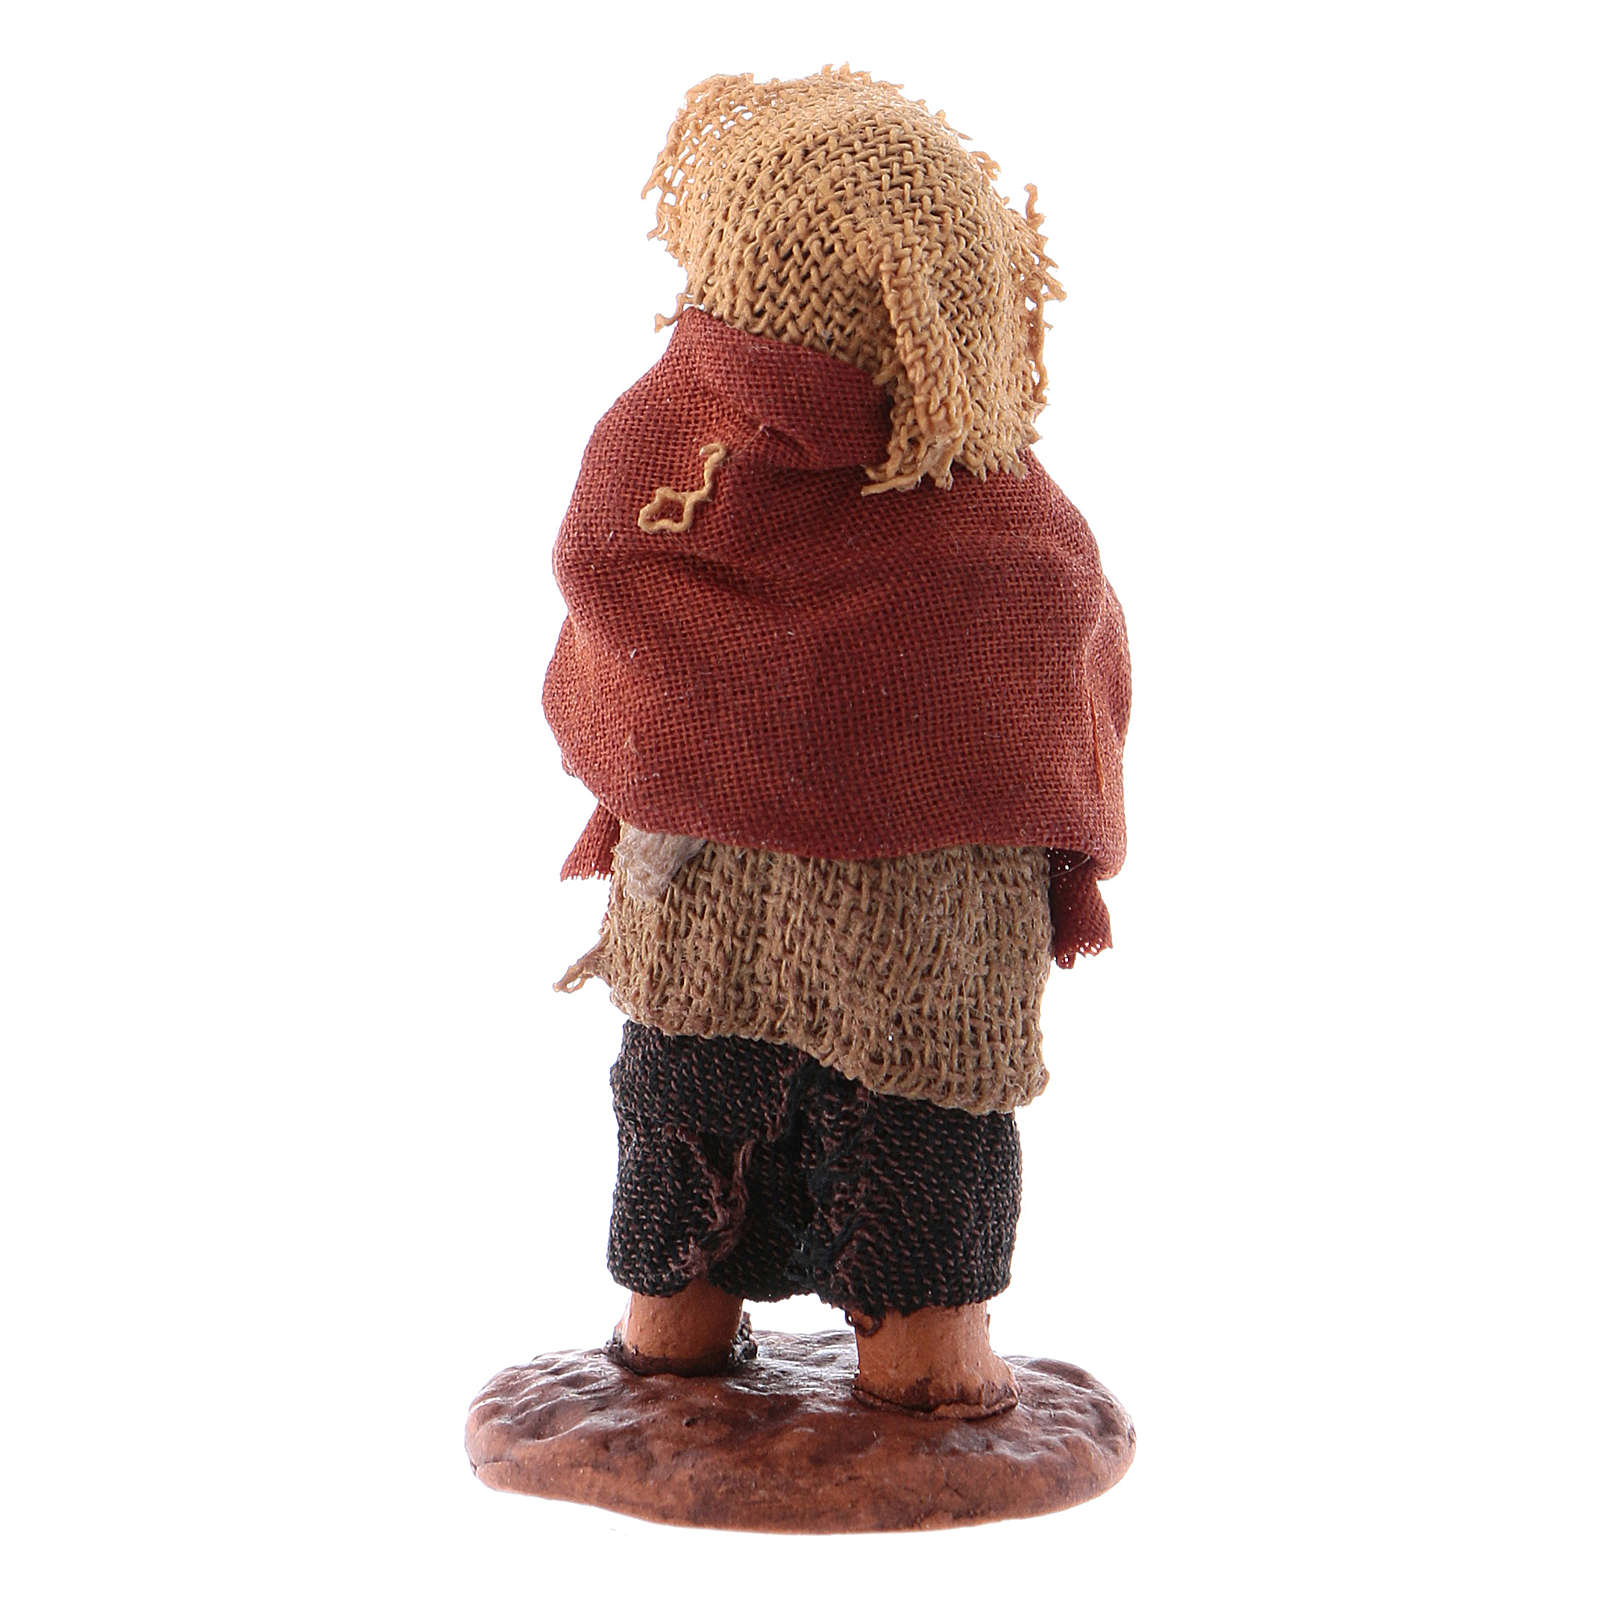 Little boy standing with ball 10cm neapolitan Nativity 4